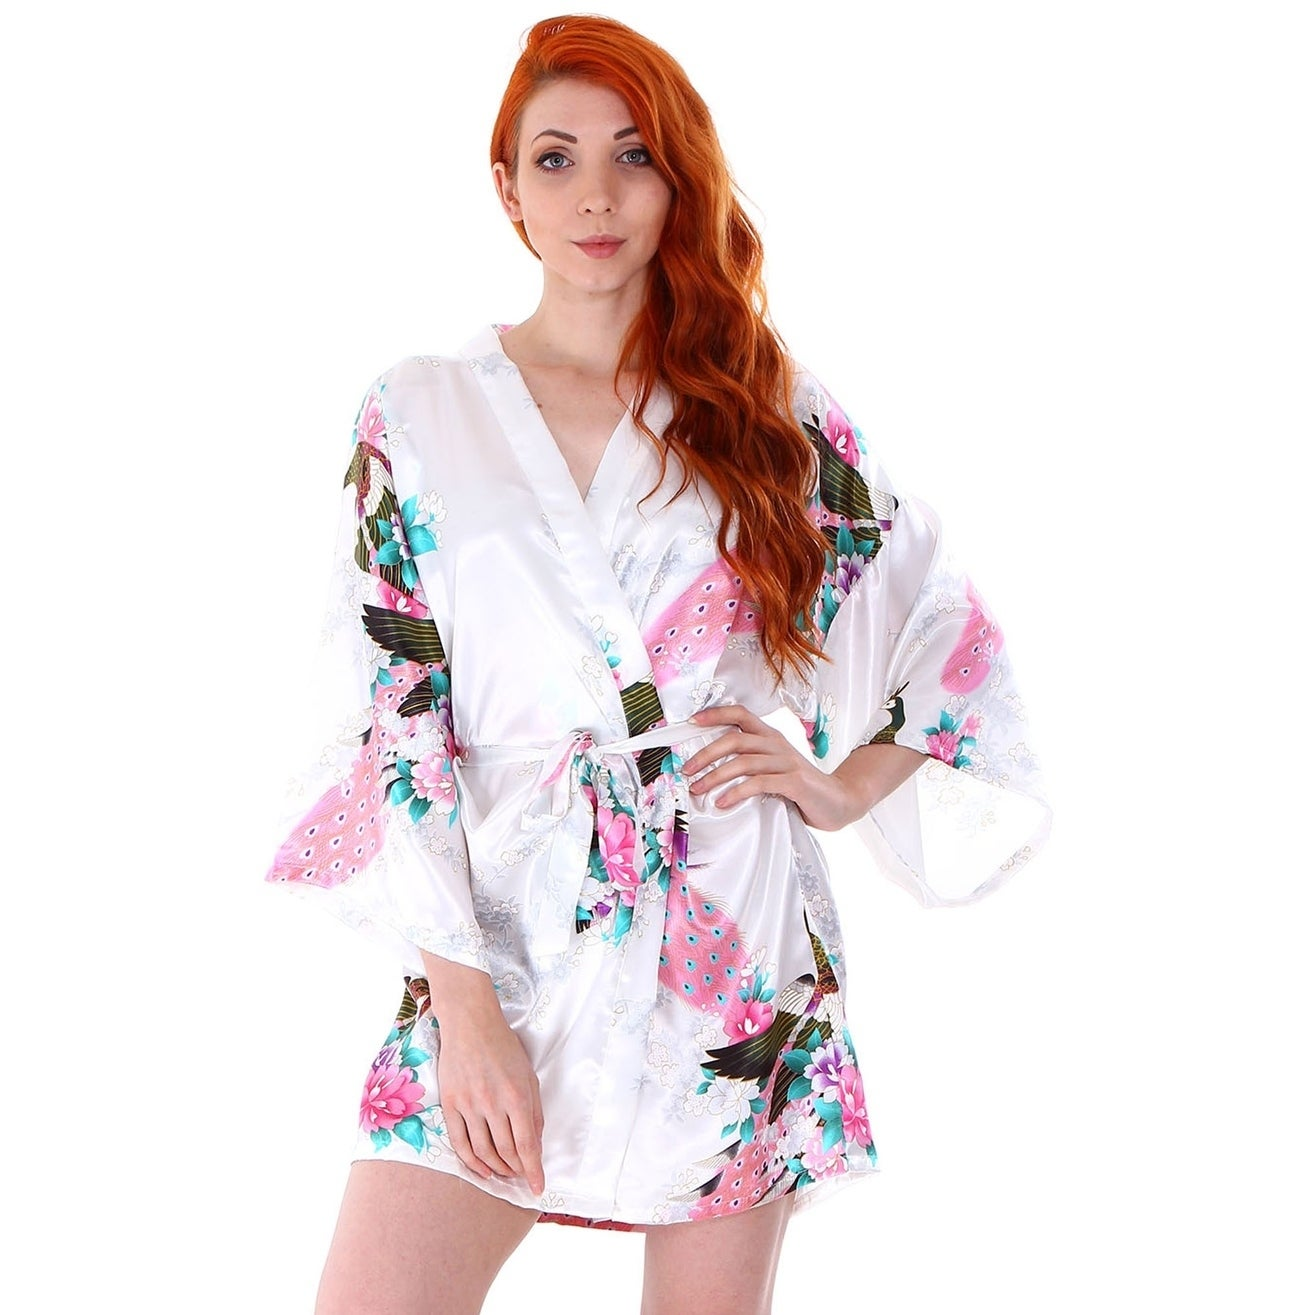 fb5b31df0 Shop Women's Peacock and Blossoms Printed Silk Satin Kimono Short Robe - On  Sale - Free Shipping On Orders Over $45 - Overstock - 18128561